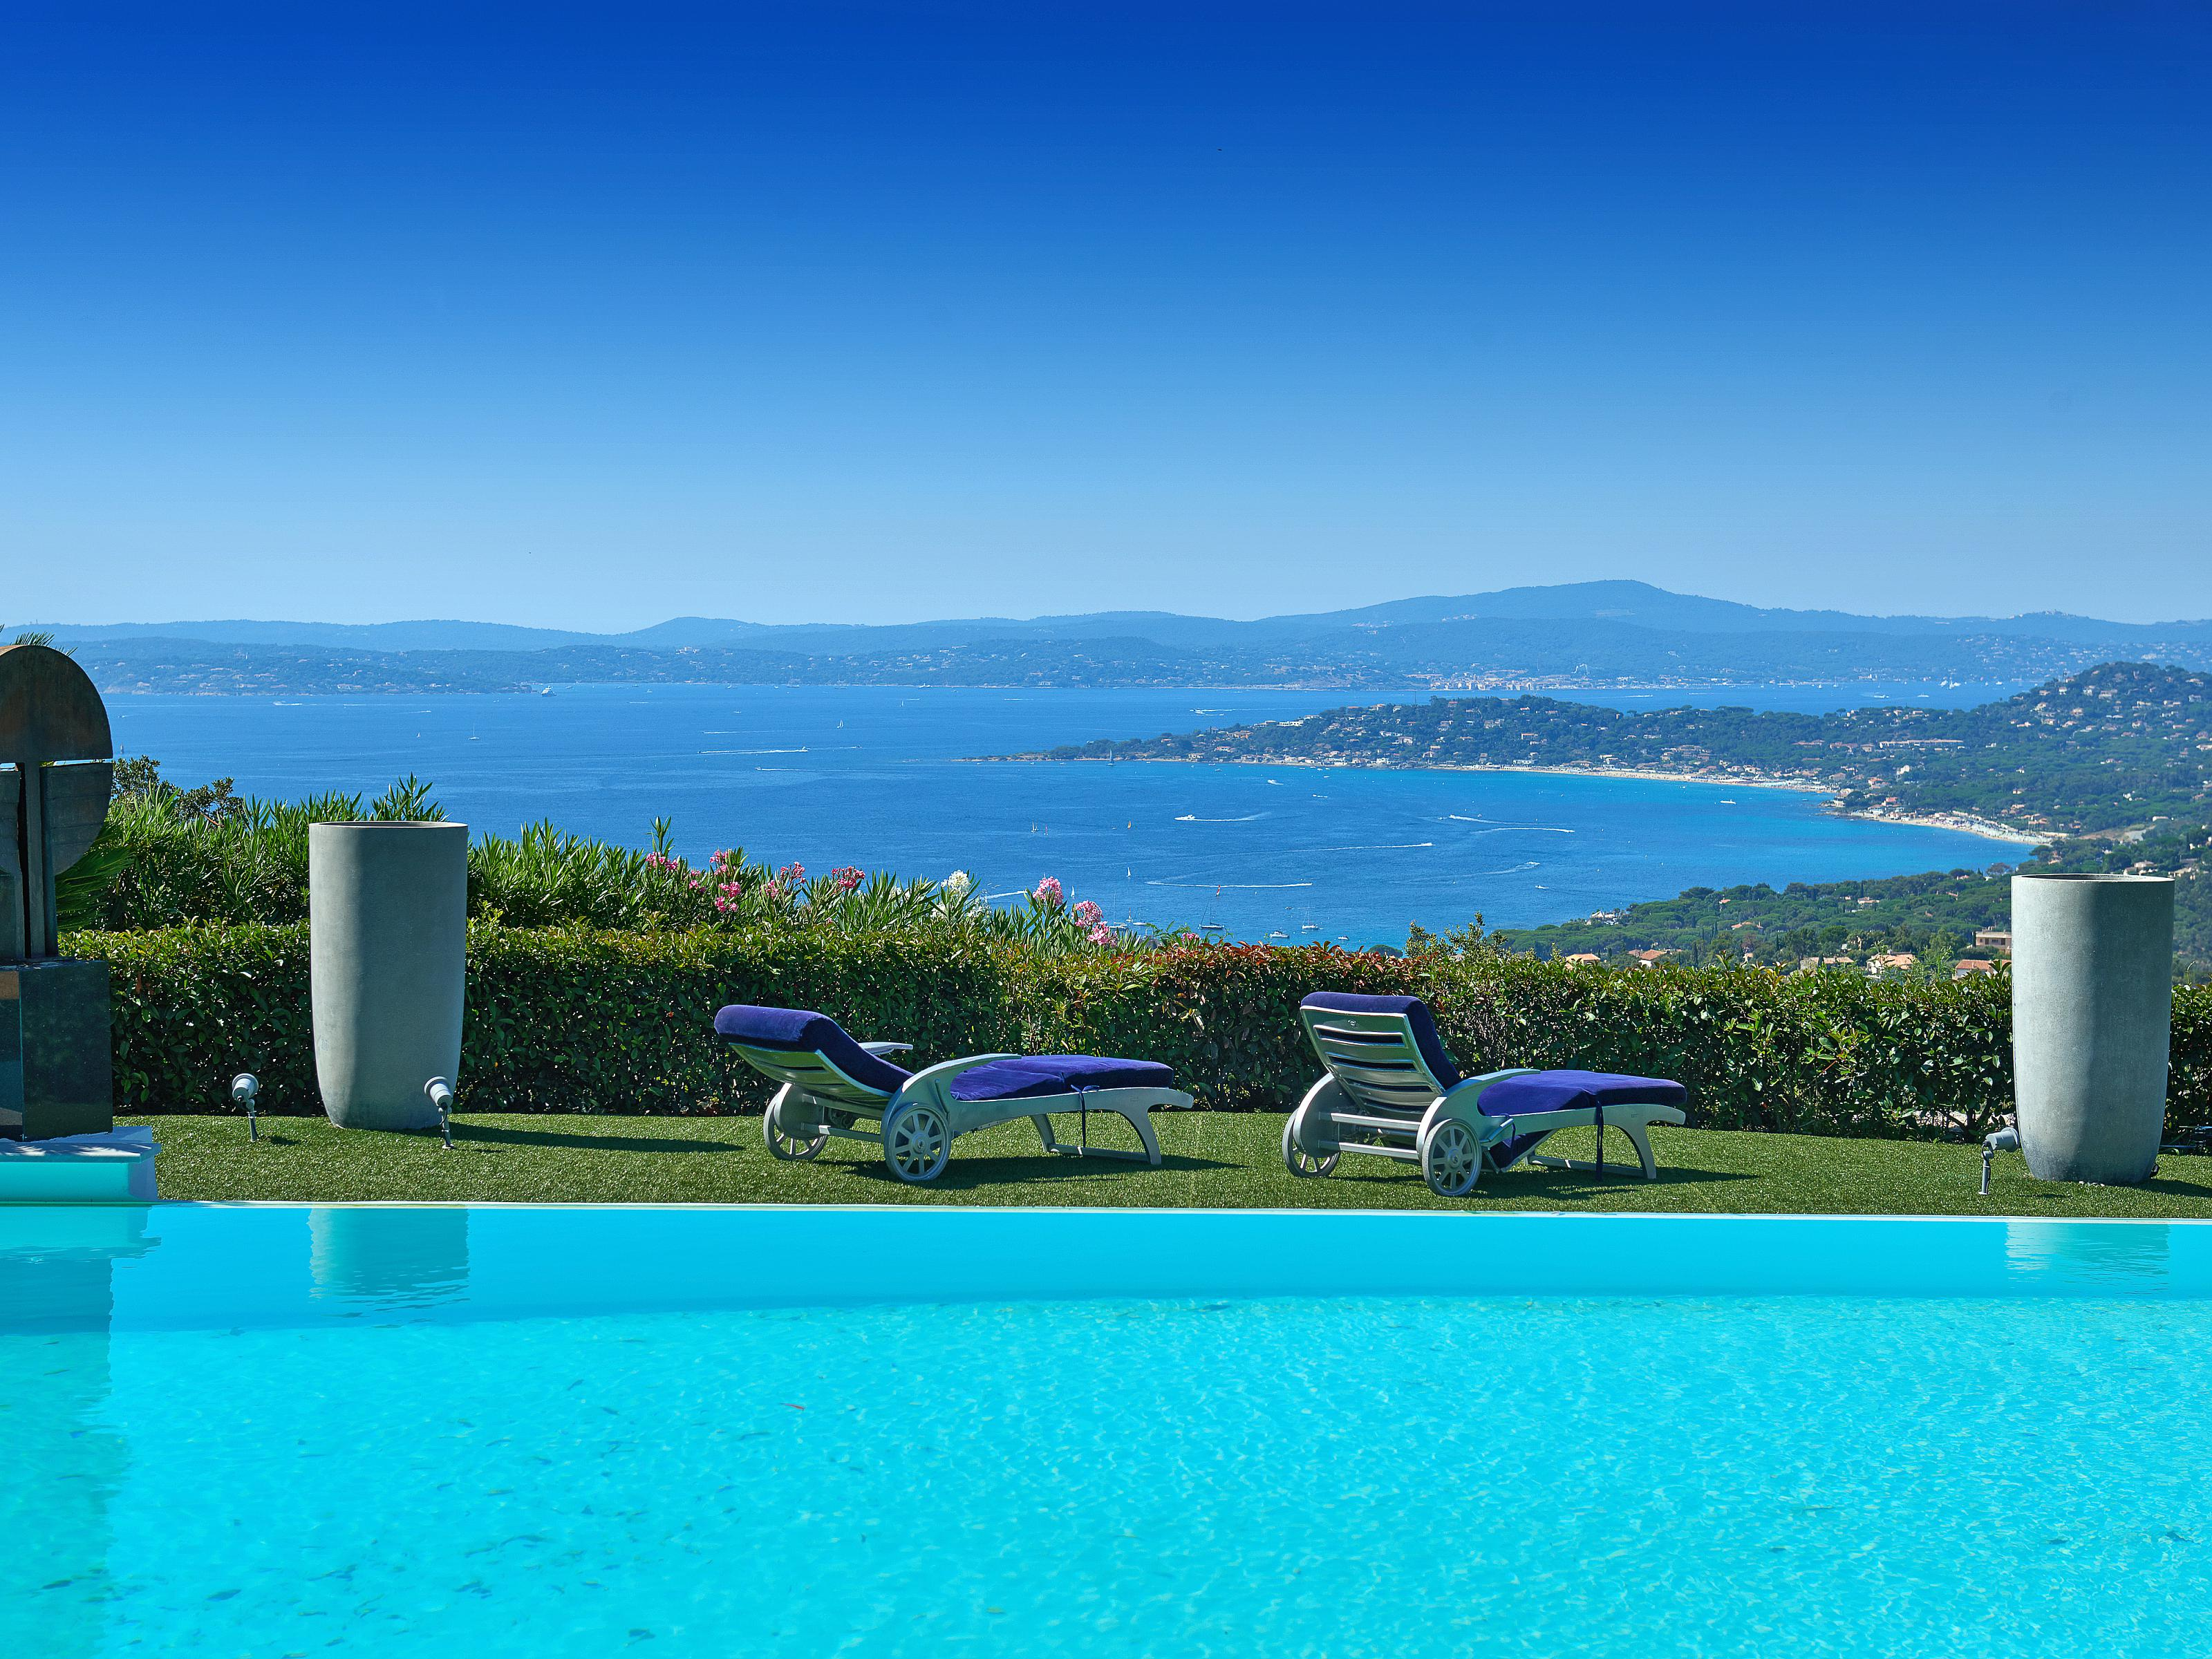 Villa per Vendita alle ore Luxurious Californian style villa with breathtaking views Saint Maxime Other Provence-Alpes-Cote D'Azur, Provenza-Alpi-Costa Azzurra 83380 Francia